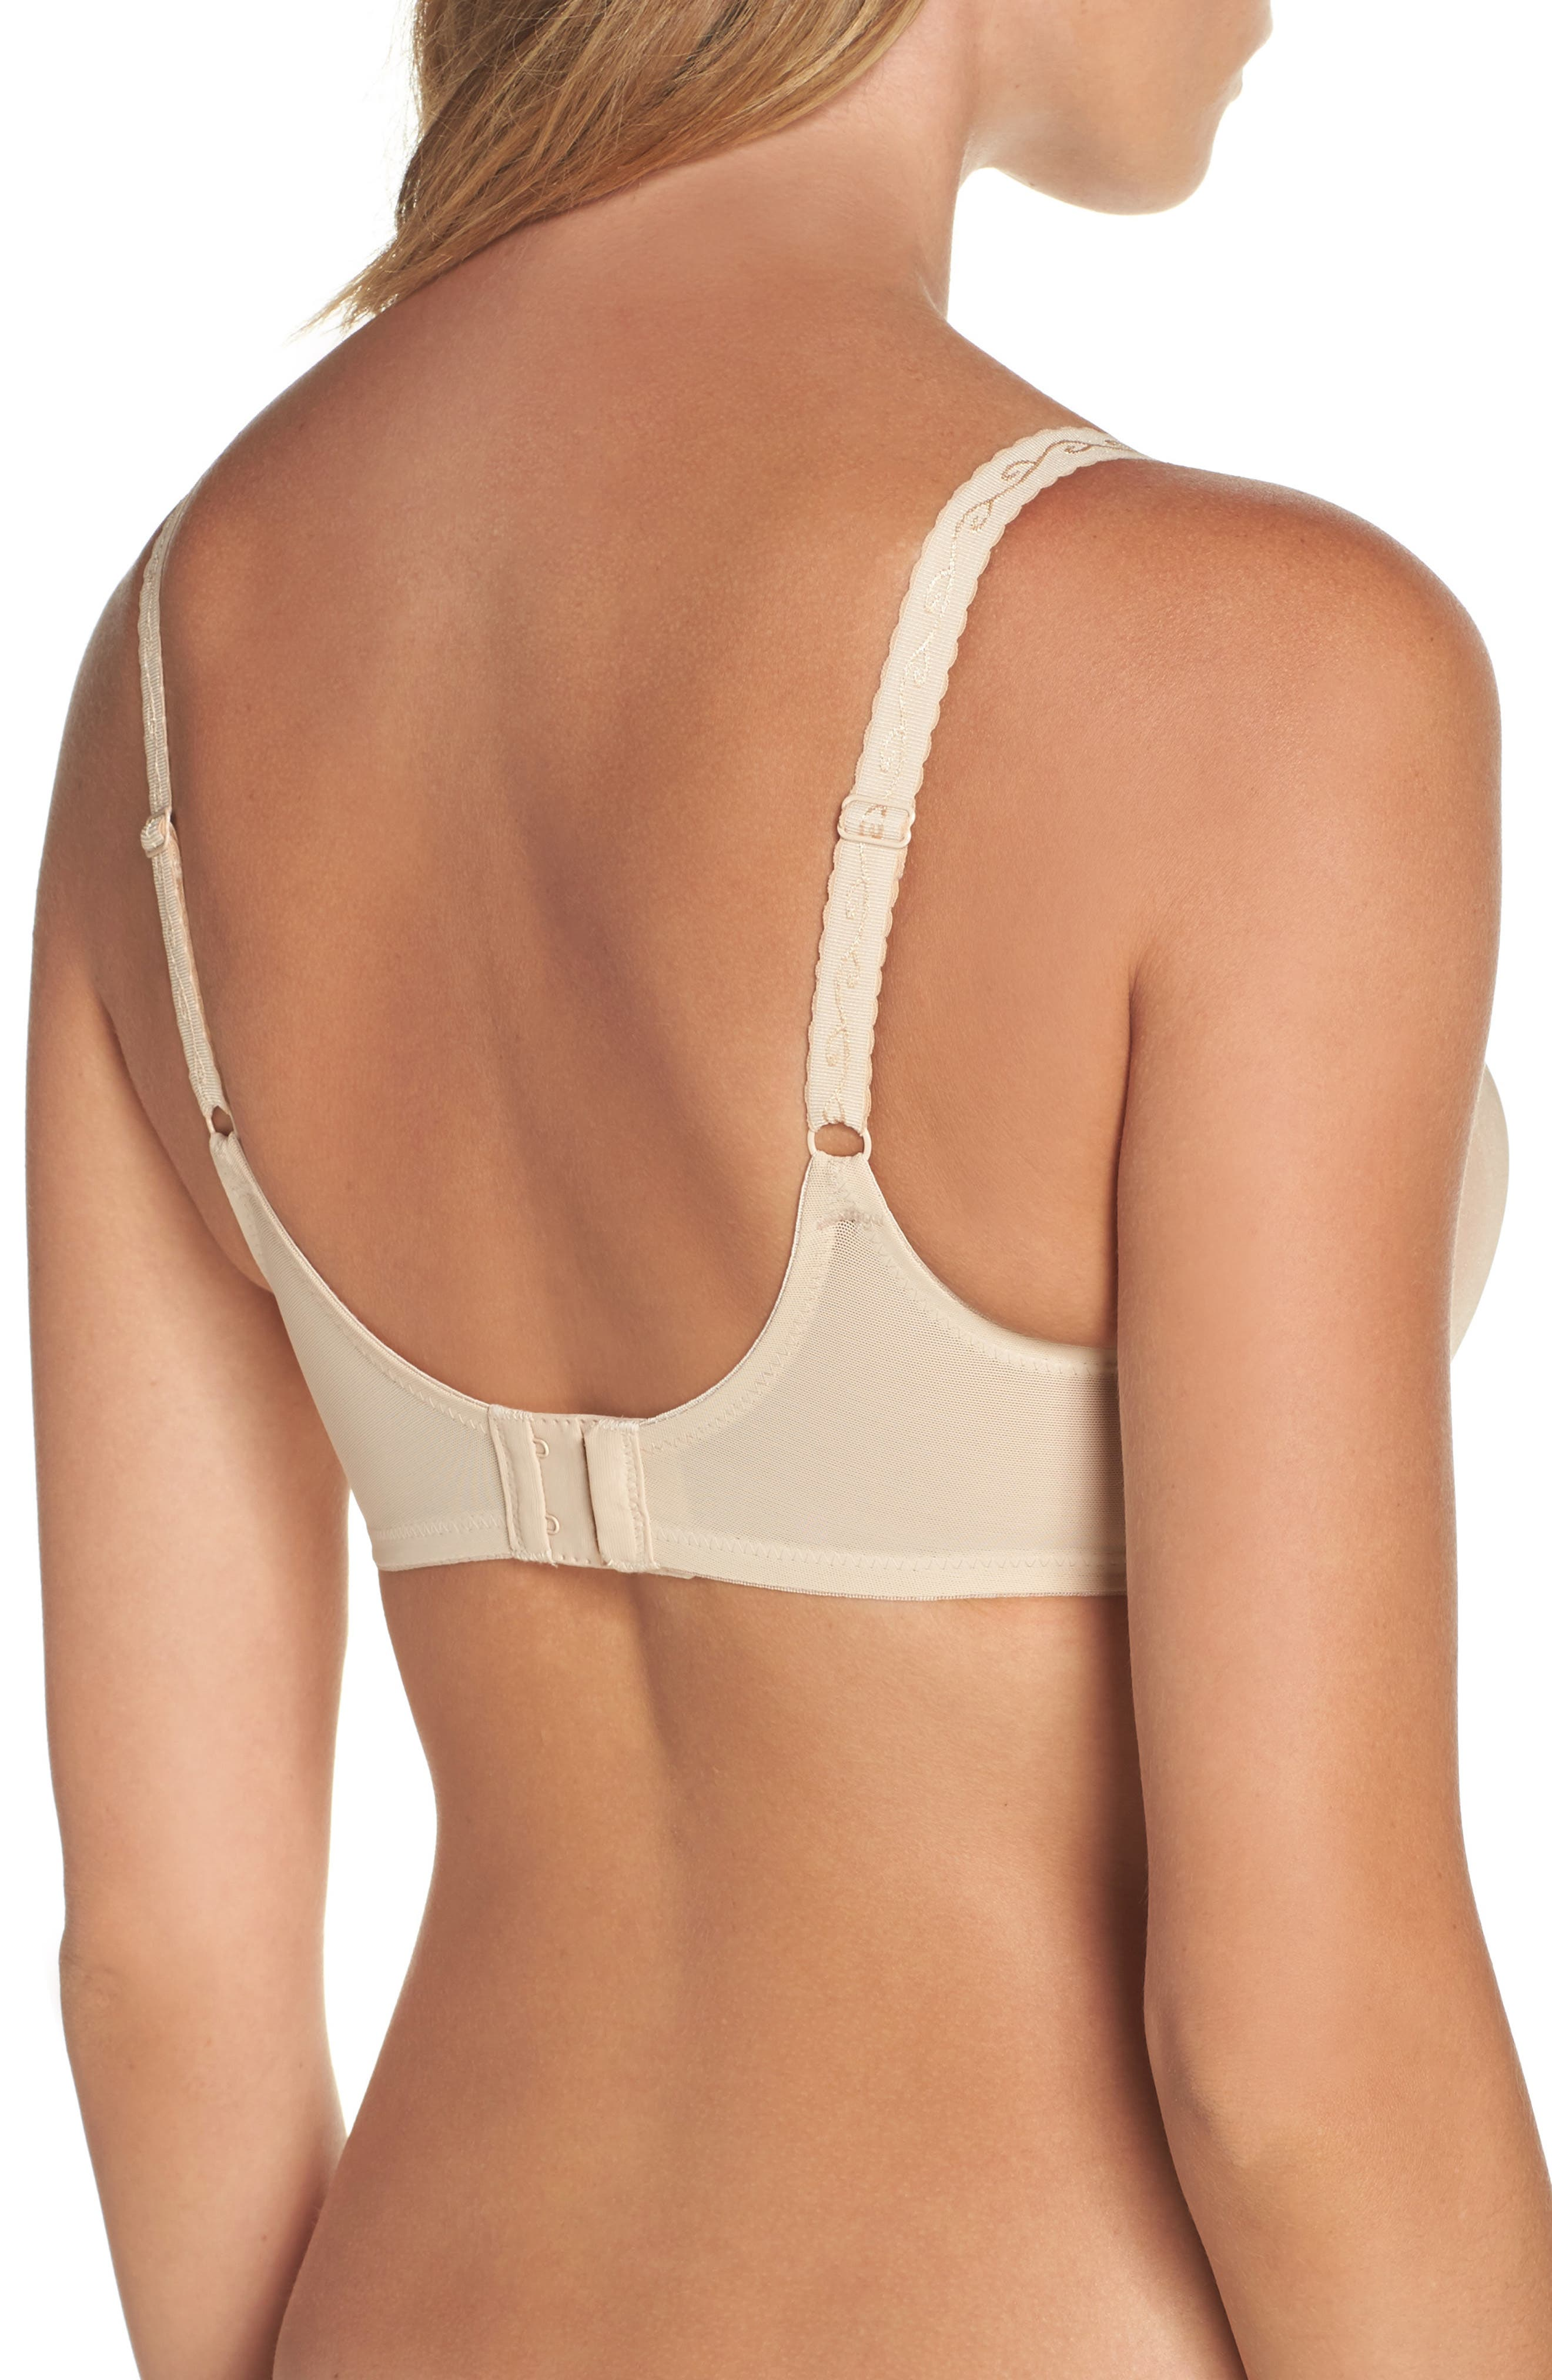 'Simple Shaping' Minimizing Underwire Bra,                             Alternate thumbnail 2, color,                             Naturally Nude